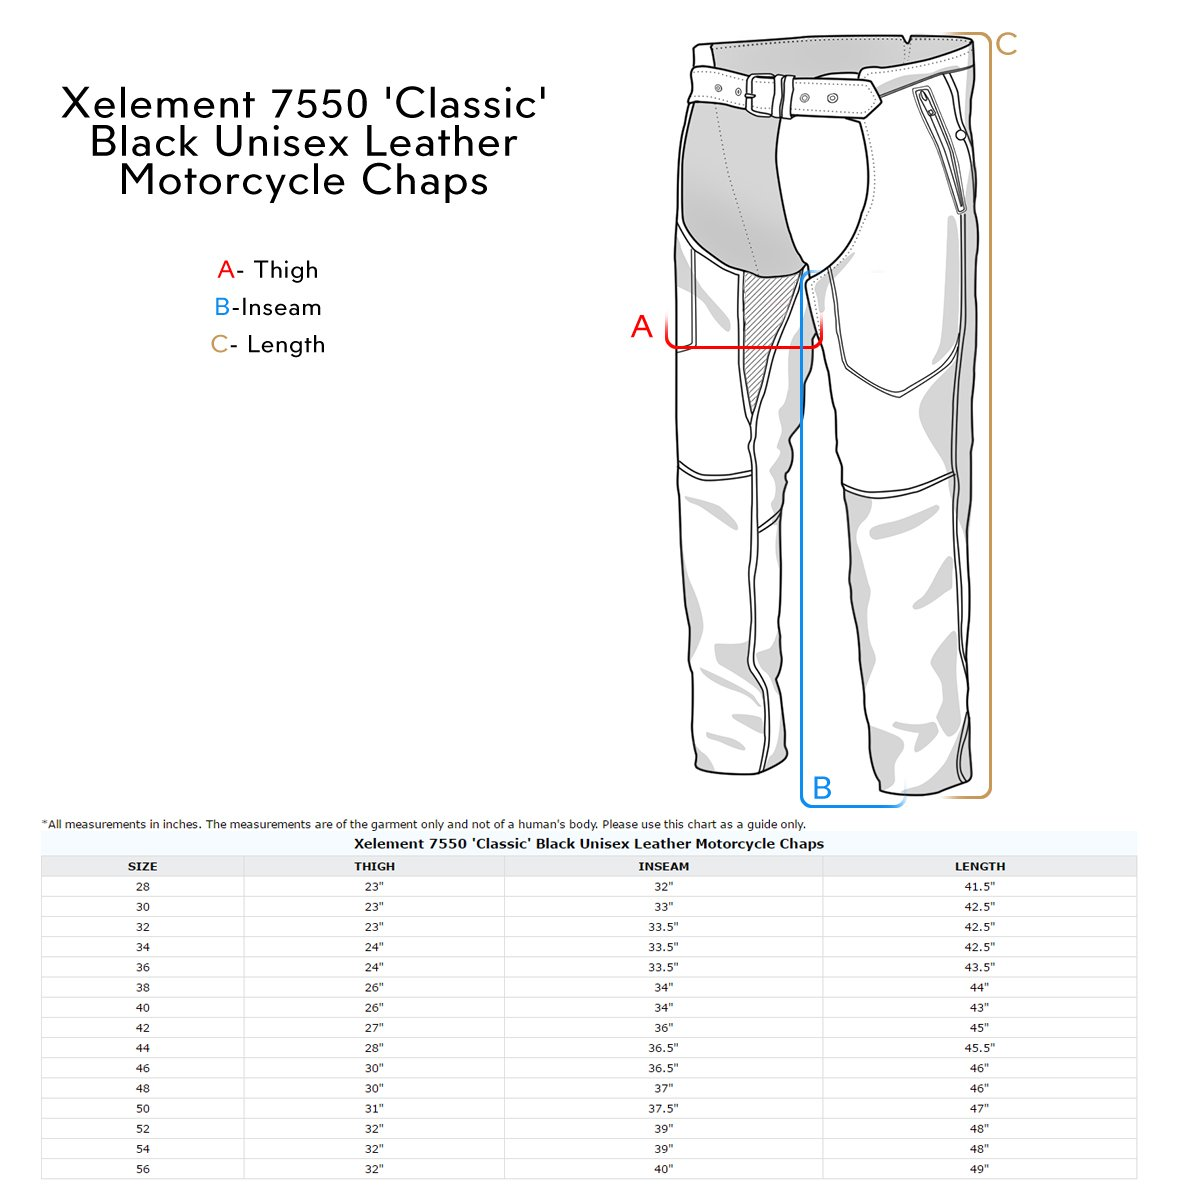 Xelement 7550 Classic Black Unisex Leather Motorcycle Chaps - 42